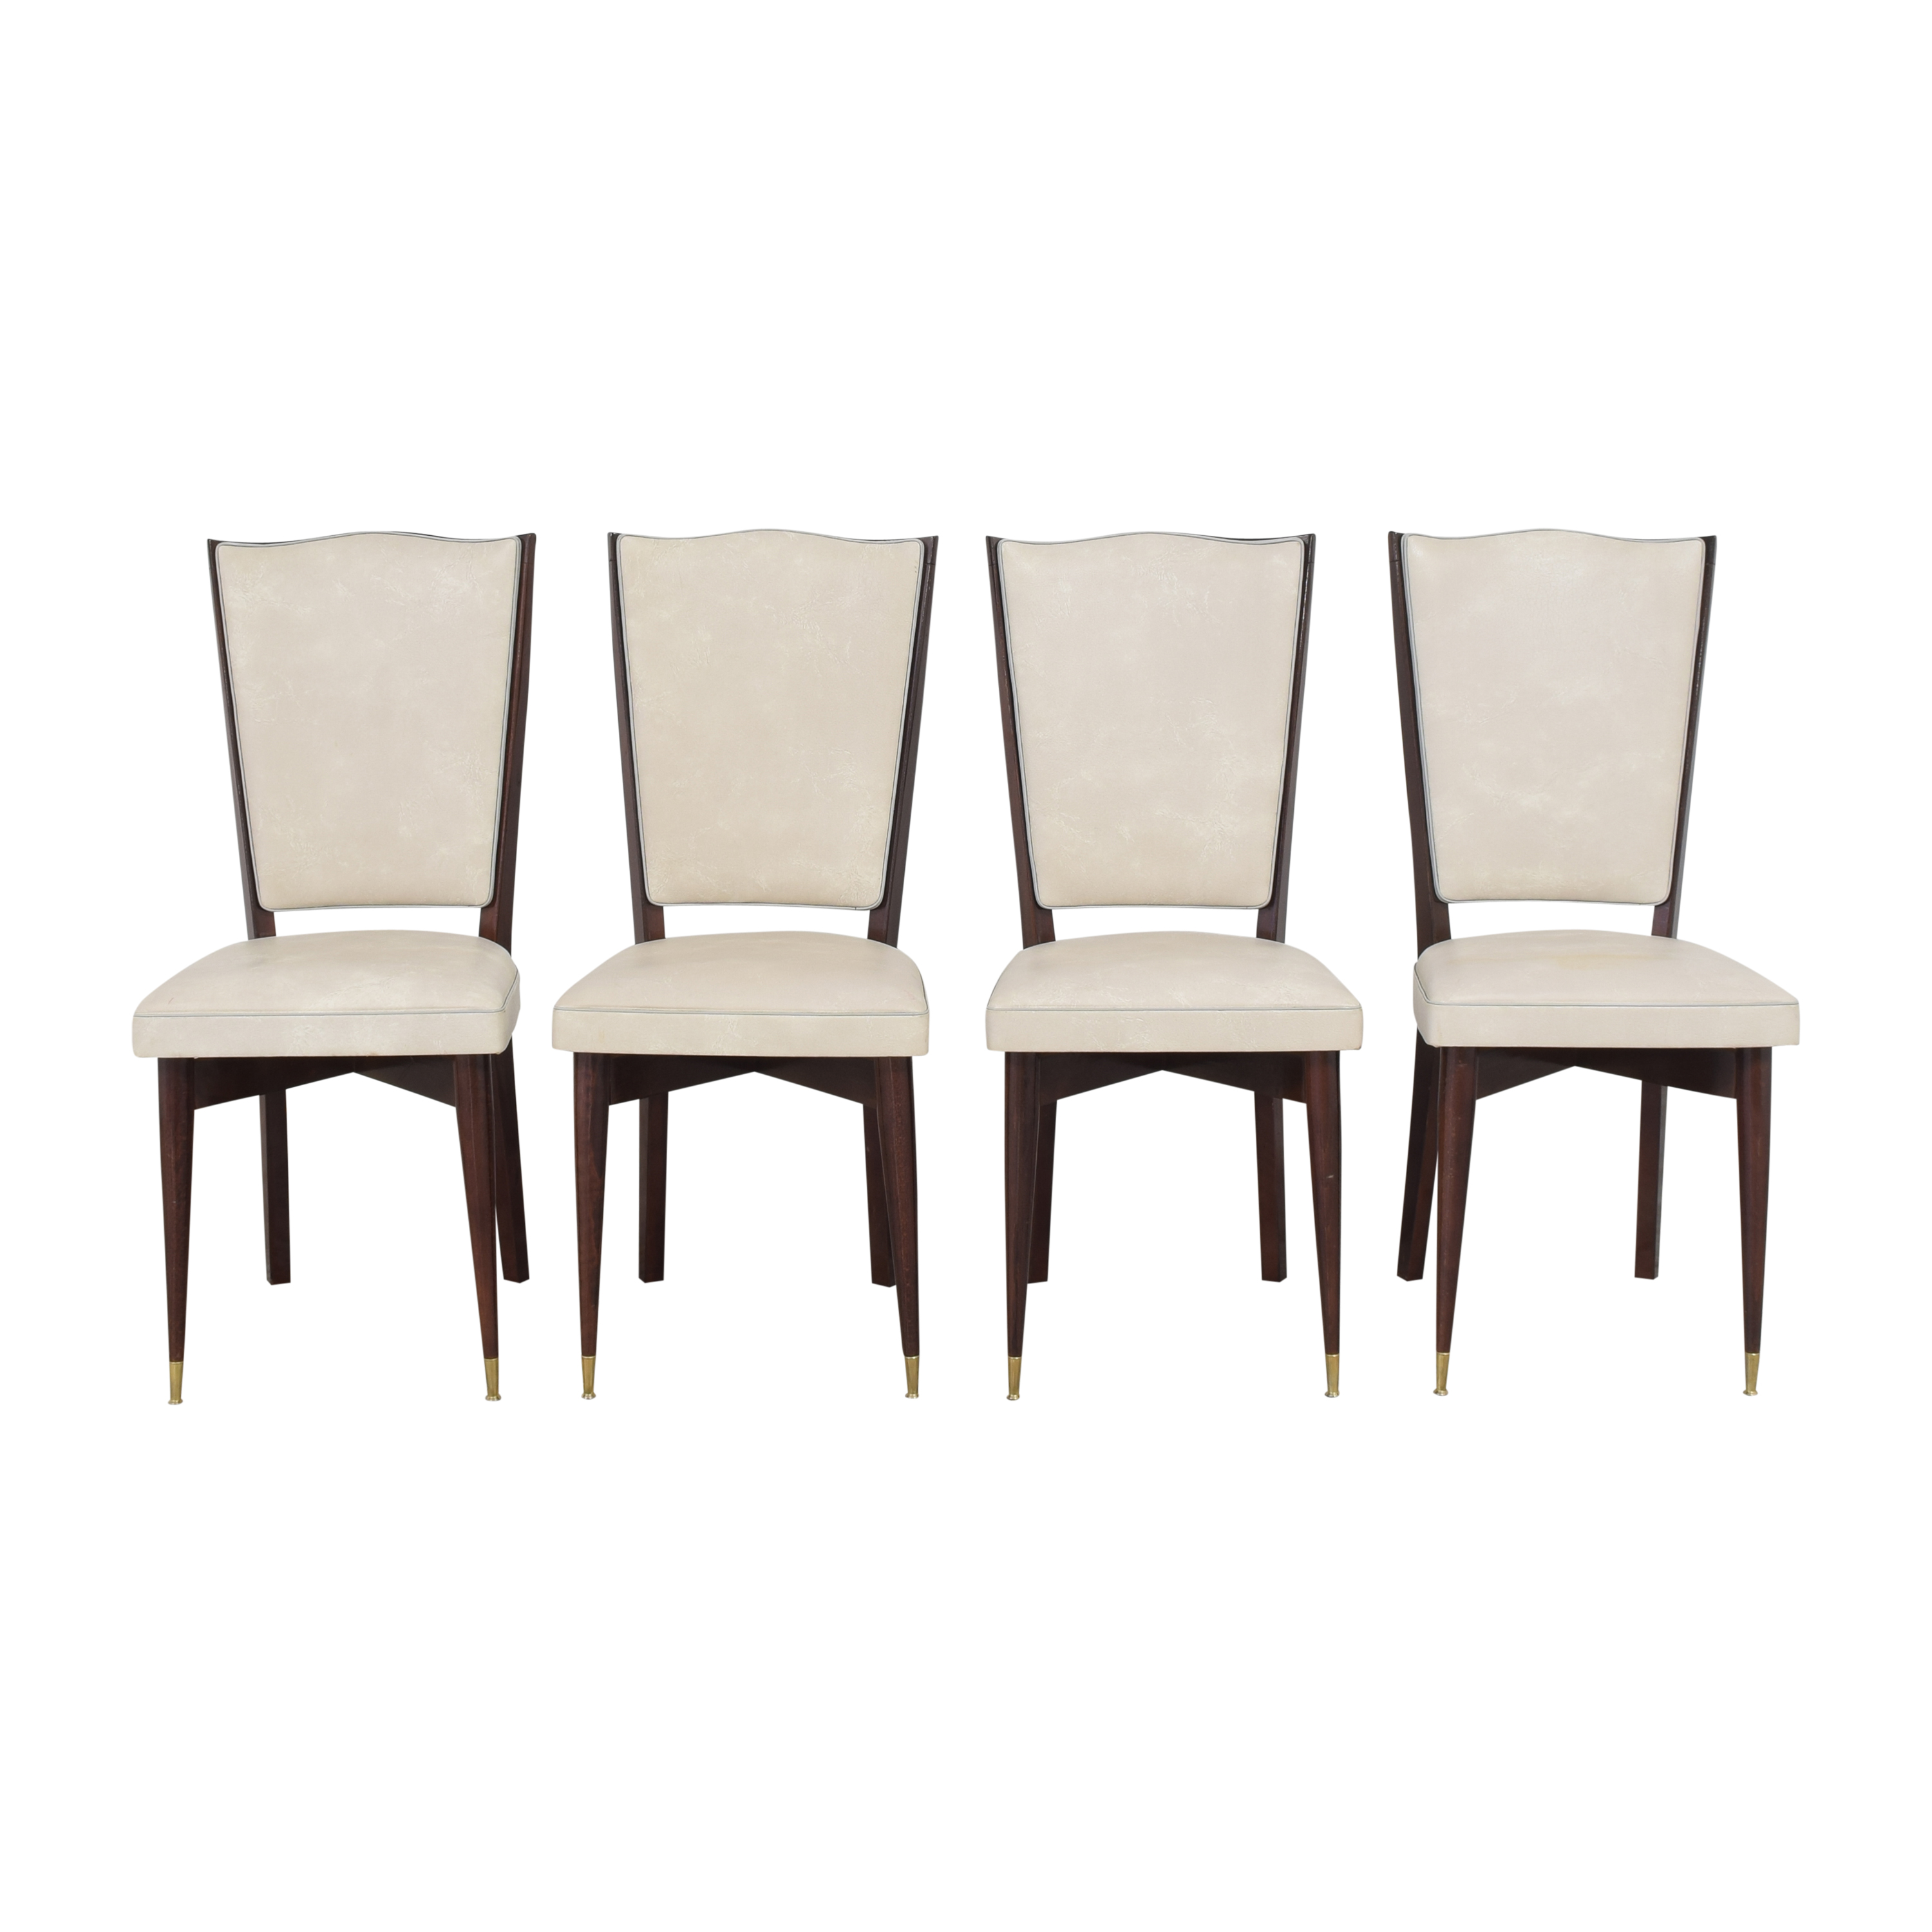 Art Deco-Style Dining Chairs second hand